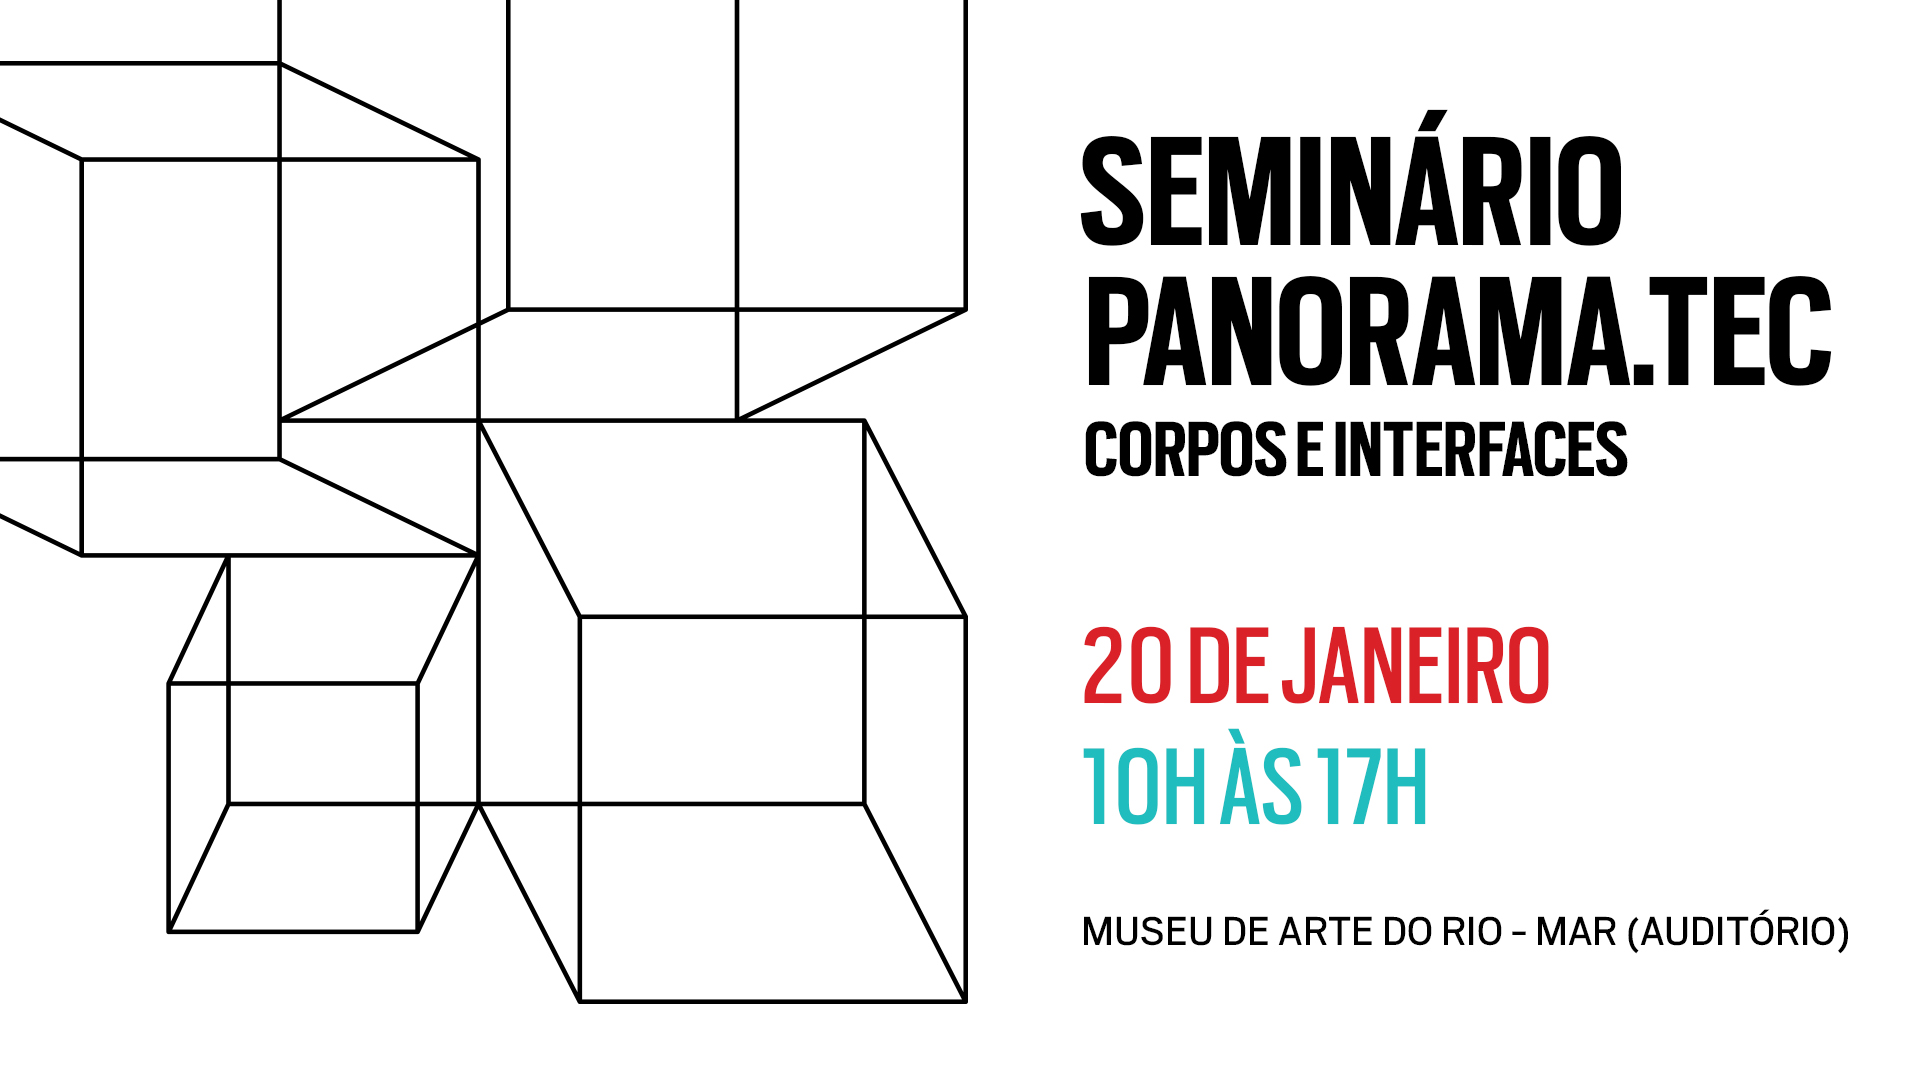 Seminário Panorama.Tec - Corpos e Interfaces